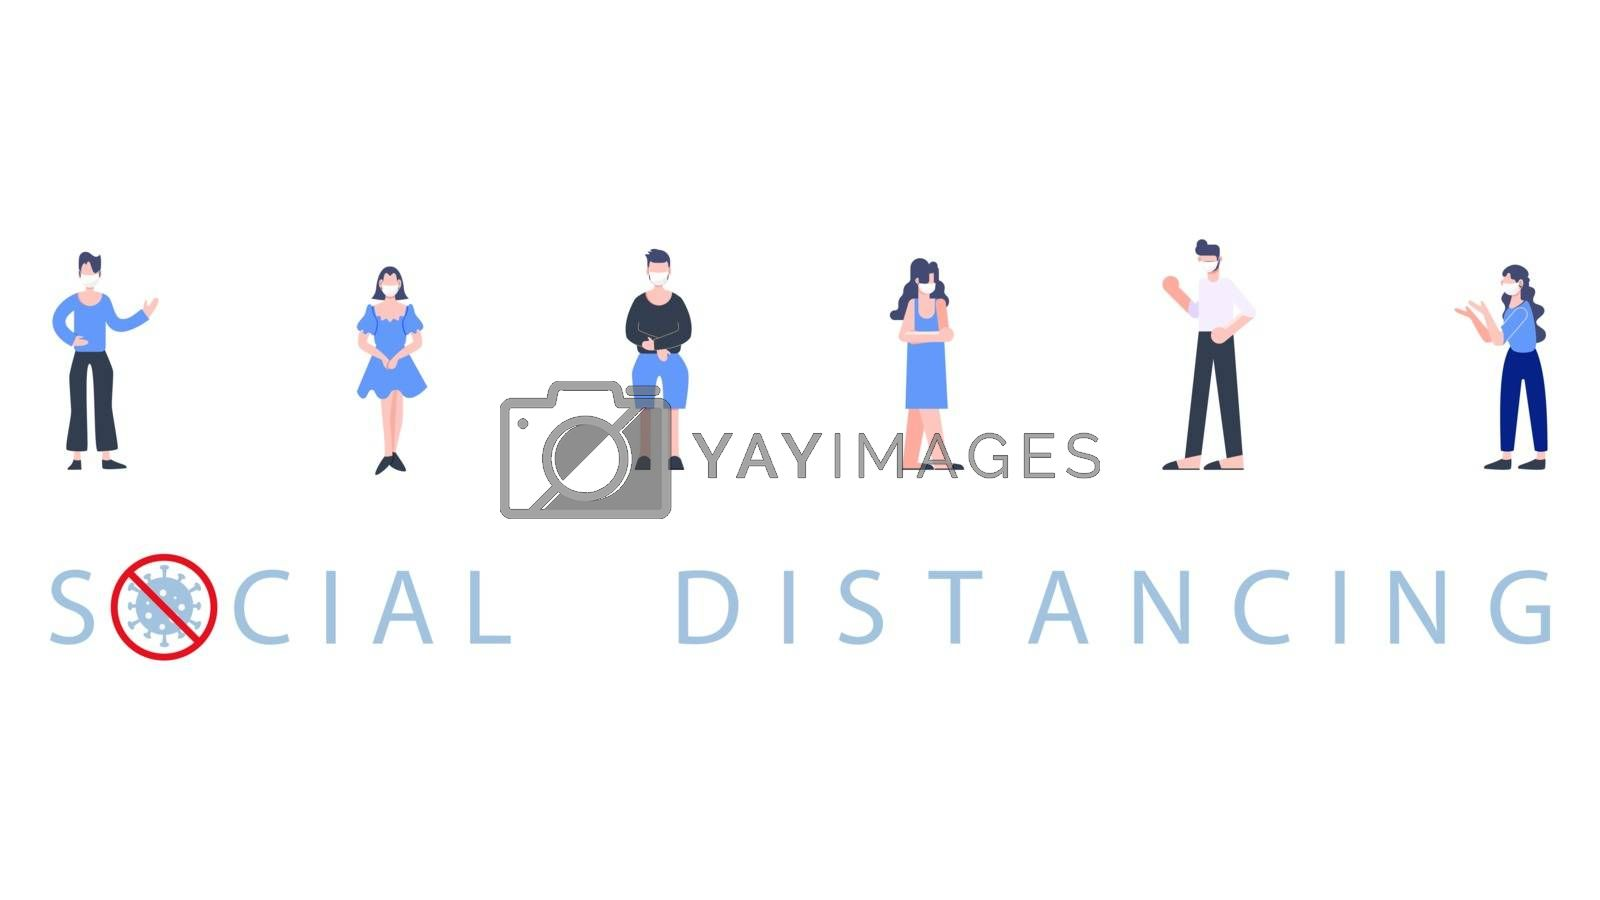 Group of people standing wearing mask separate physical distancing. Social distancing. Covid-19 coronavirus pandemic outbreak banner. Health care and medical vector.